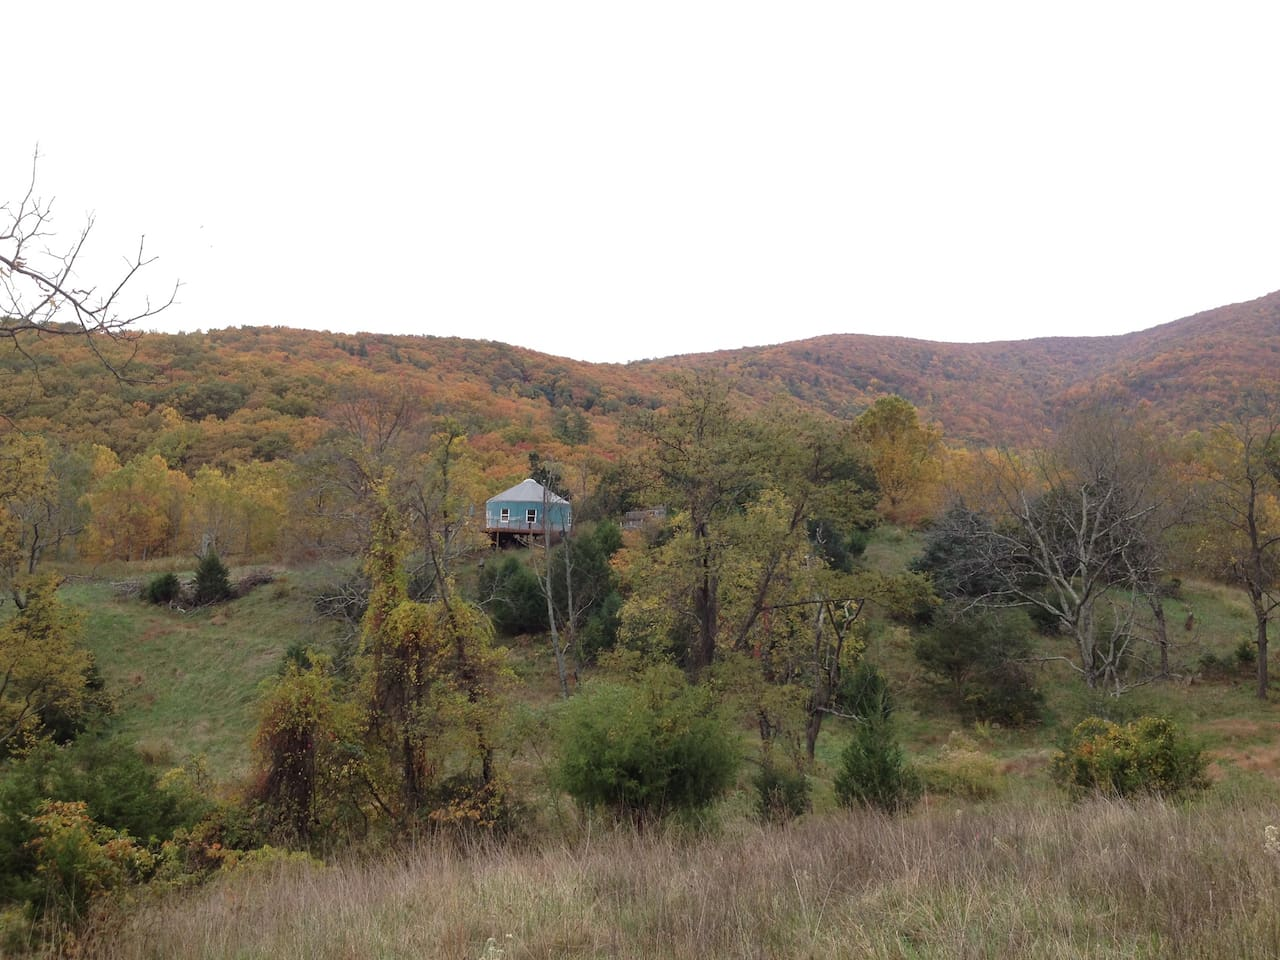 Stay in a fully-equiped luxury yurt in the foothills of the Blue Ridge mountains.